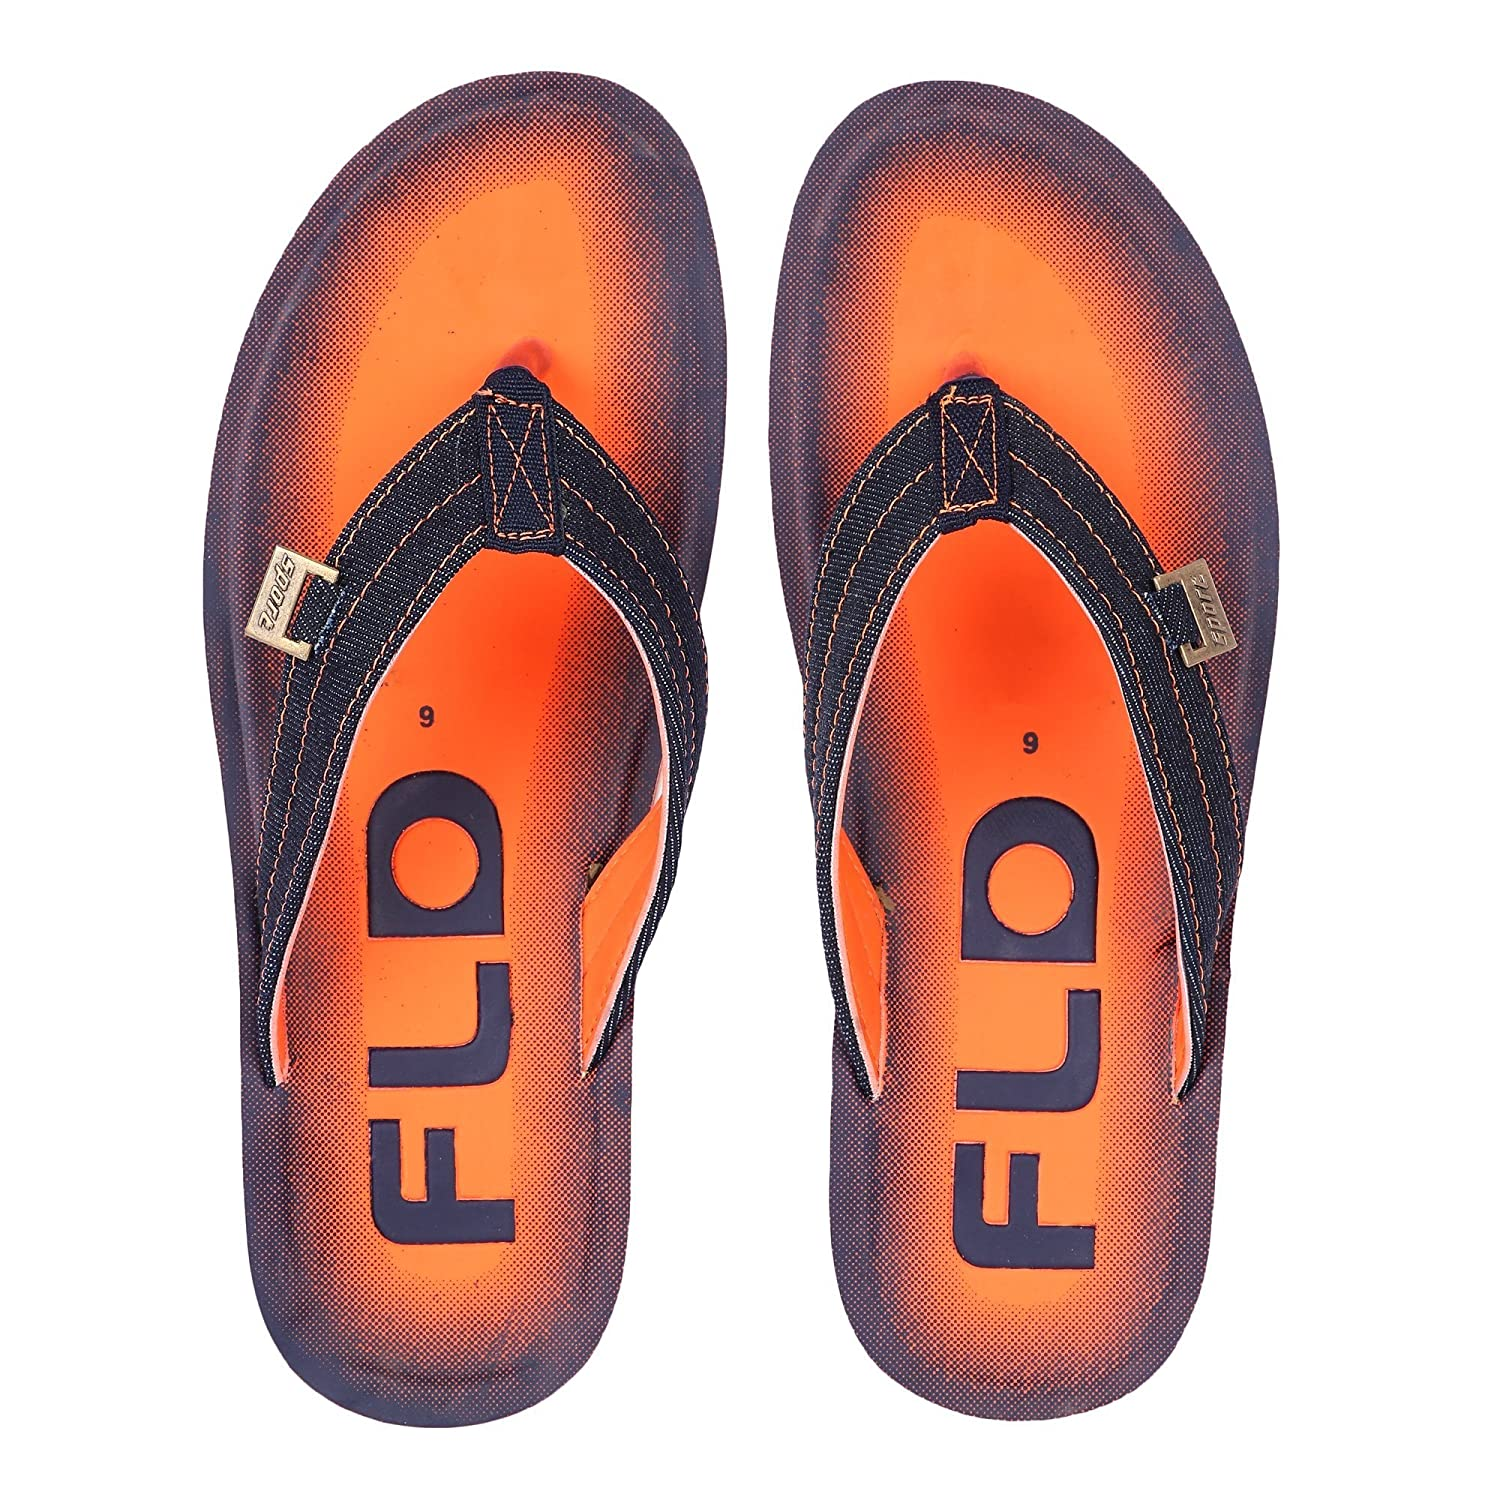 8d125255df13ca Vonc PU Sole Blue and Orange Flip Flops for Men  Buy Online at Low Prices  in India - Amazon.in